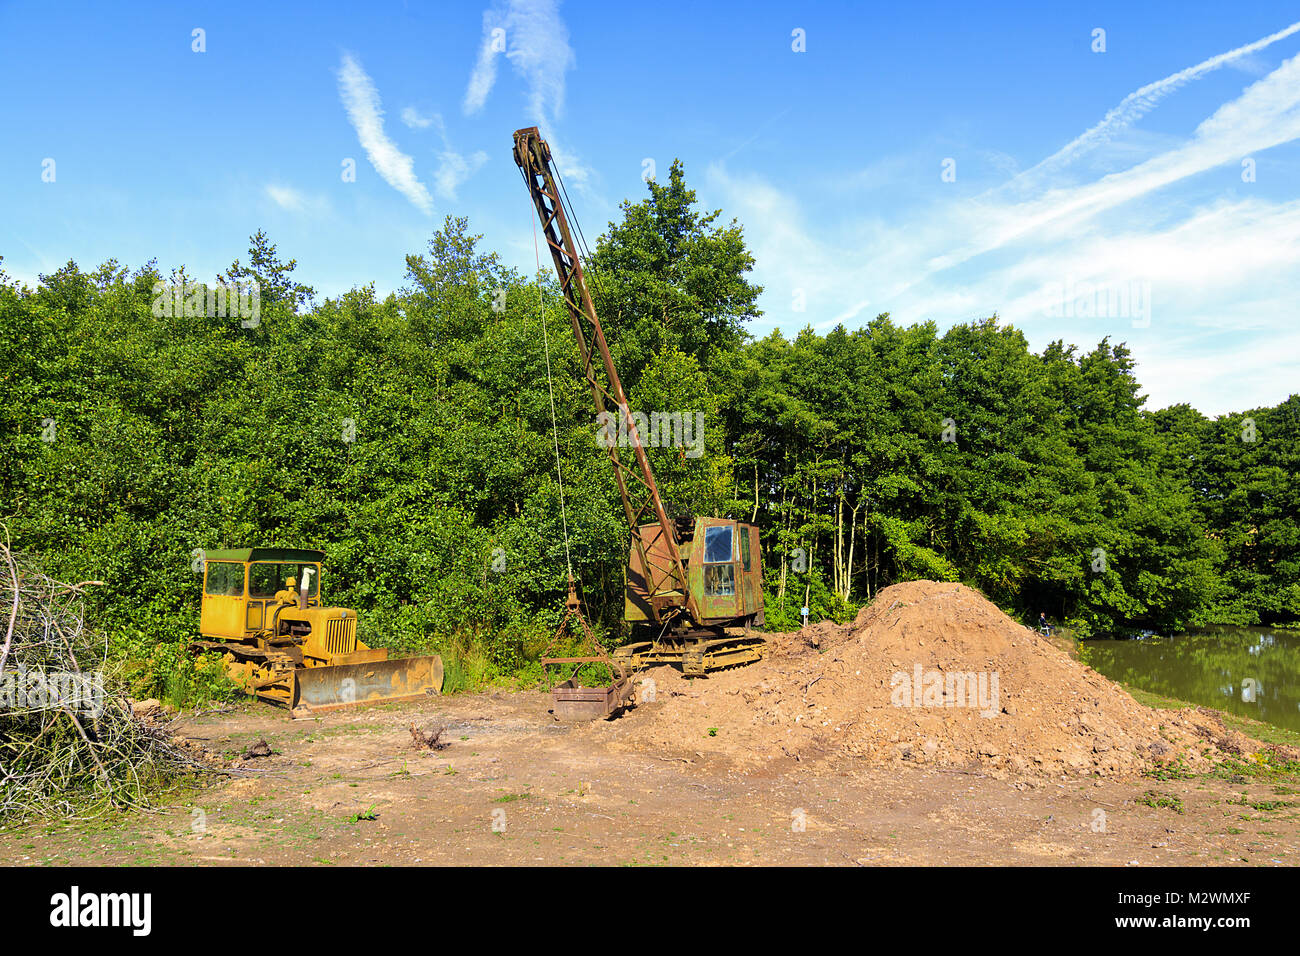 Old Bulldozer and Crane used for dredging lake - Stock Image